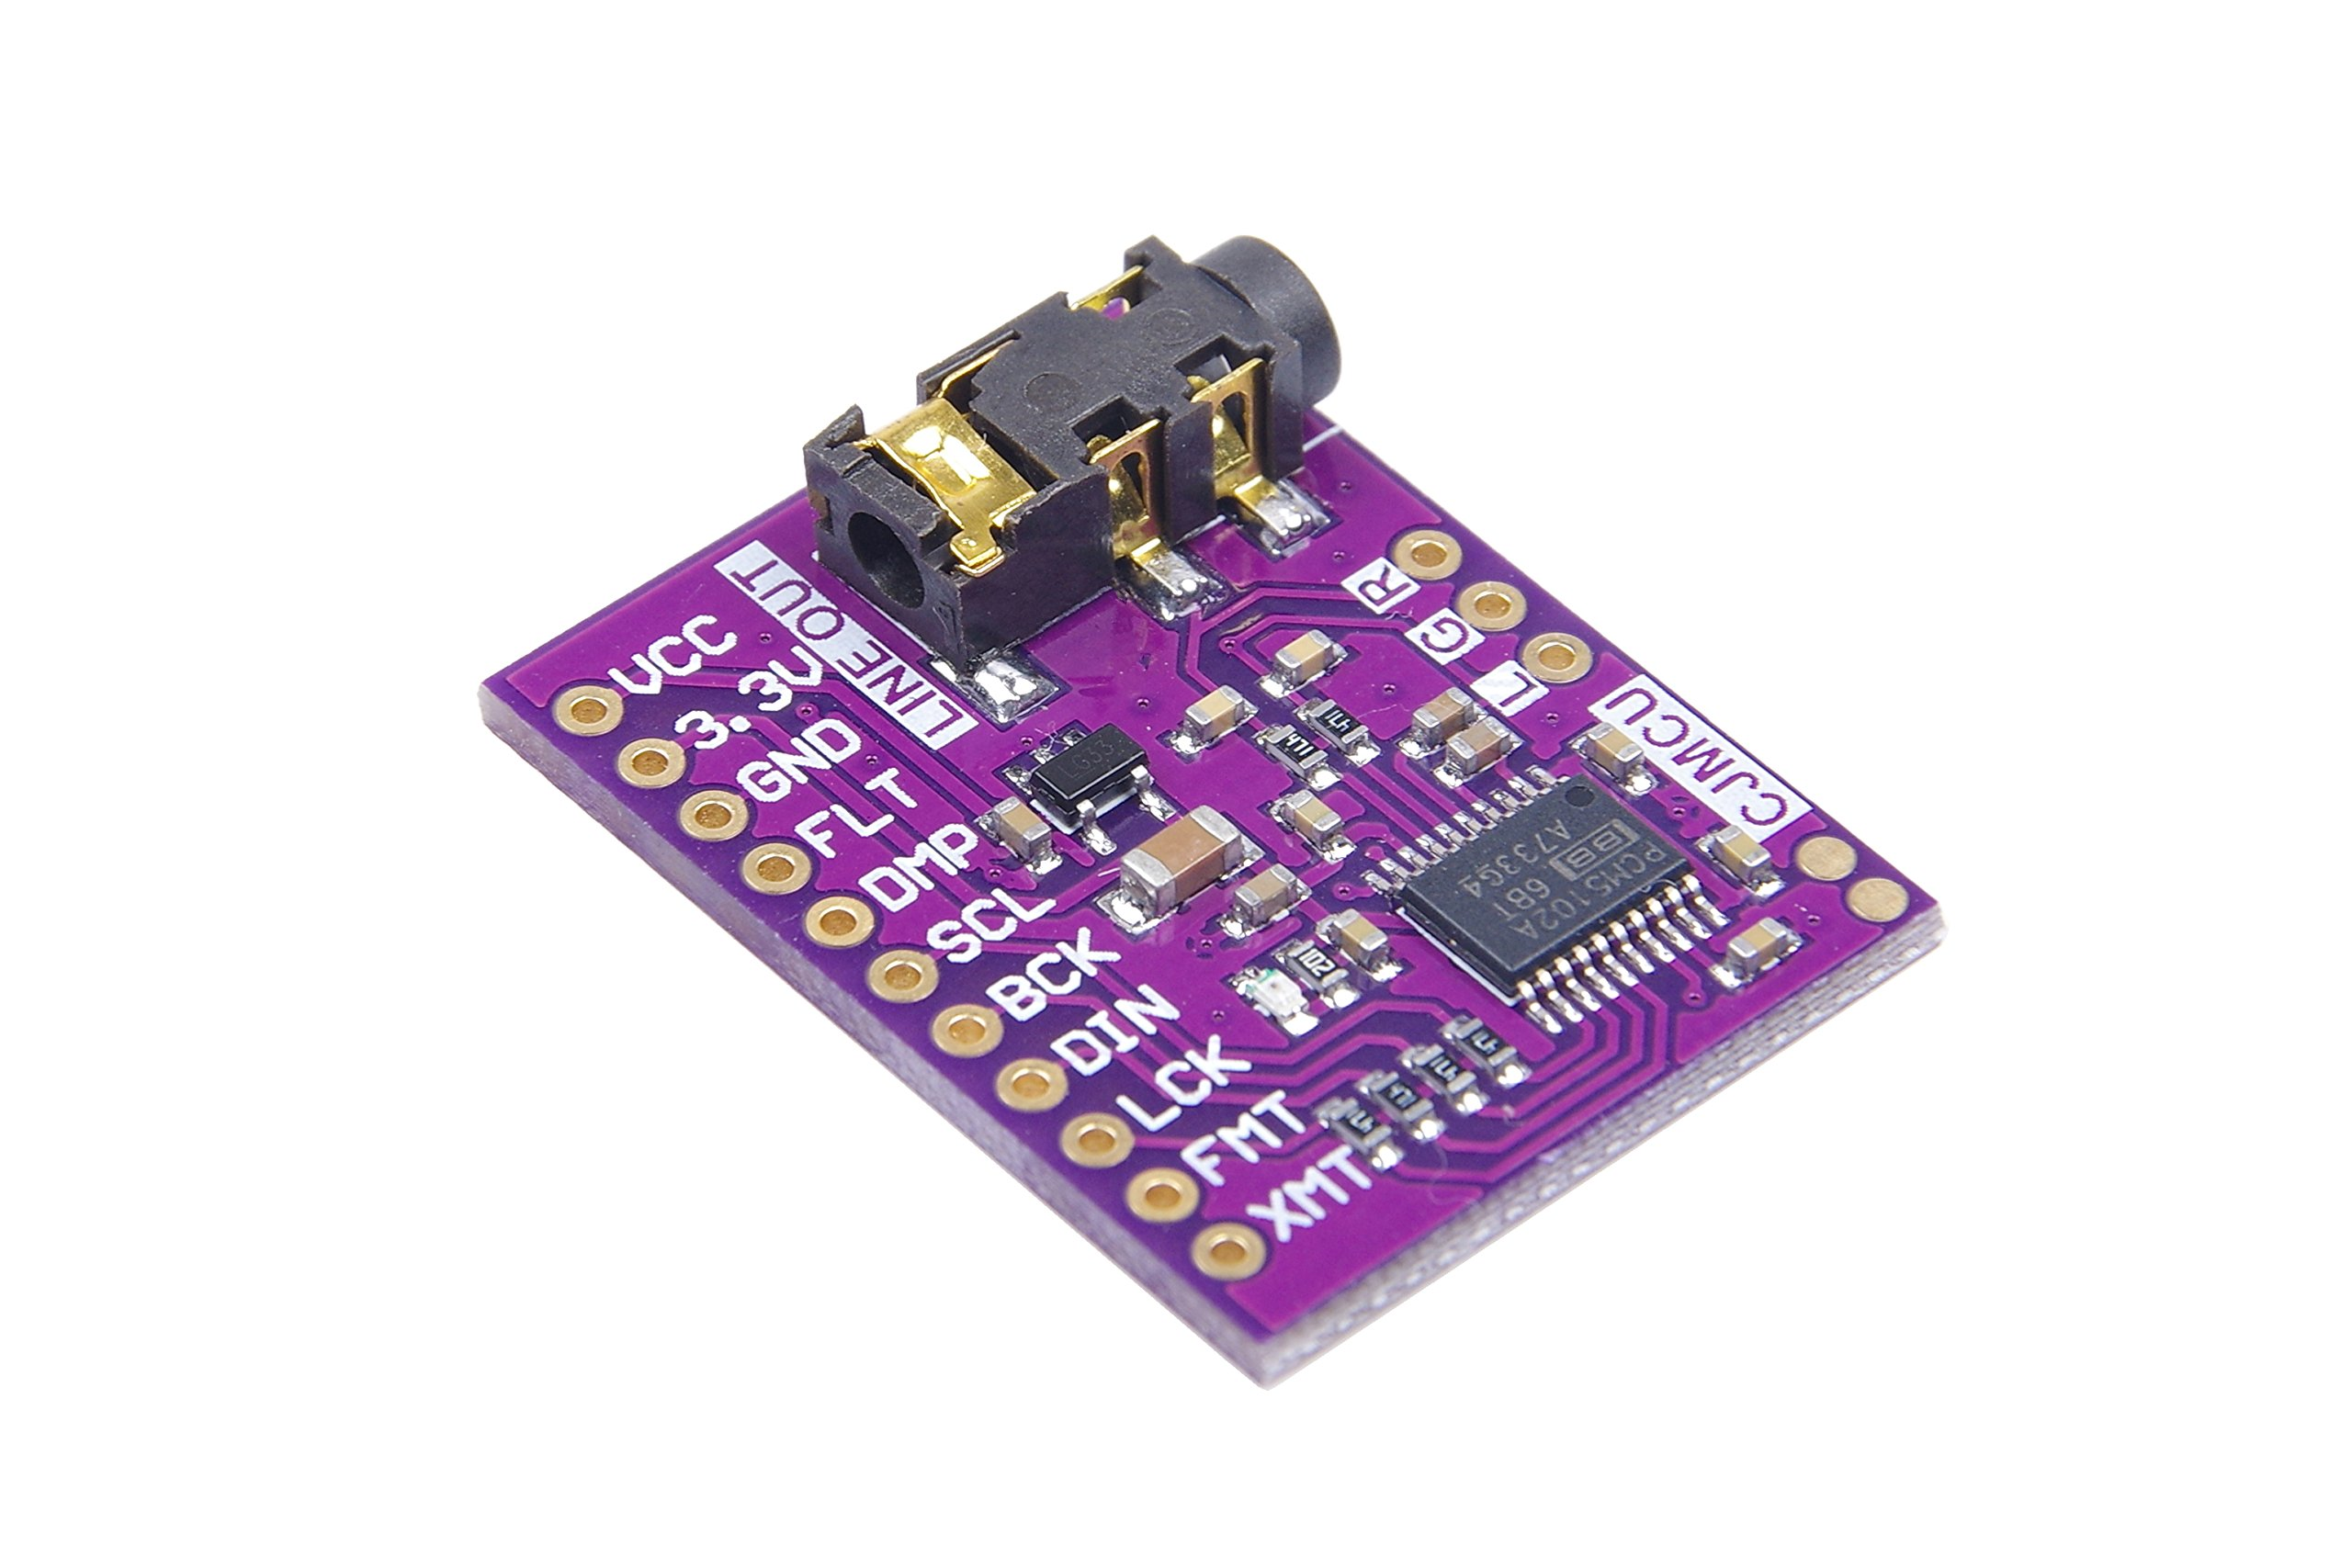 PCM5102A Digital-to-Analog Converter PLL Voice Module Stereo DAC Sound Card Board 3.5mm Stereo Jack 24 Bits Digital Audio Module for Raspberry Pi